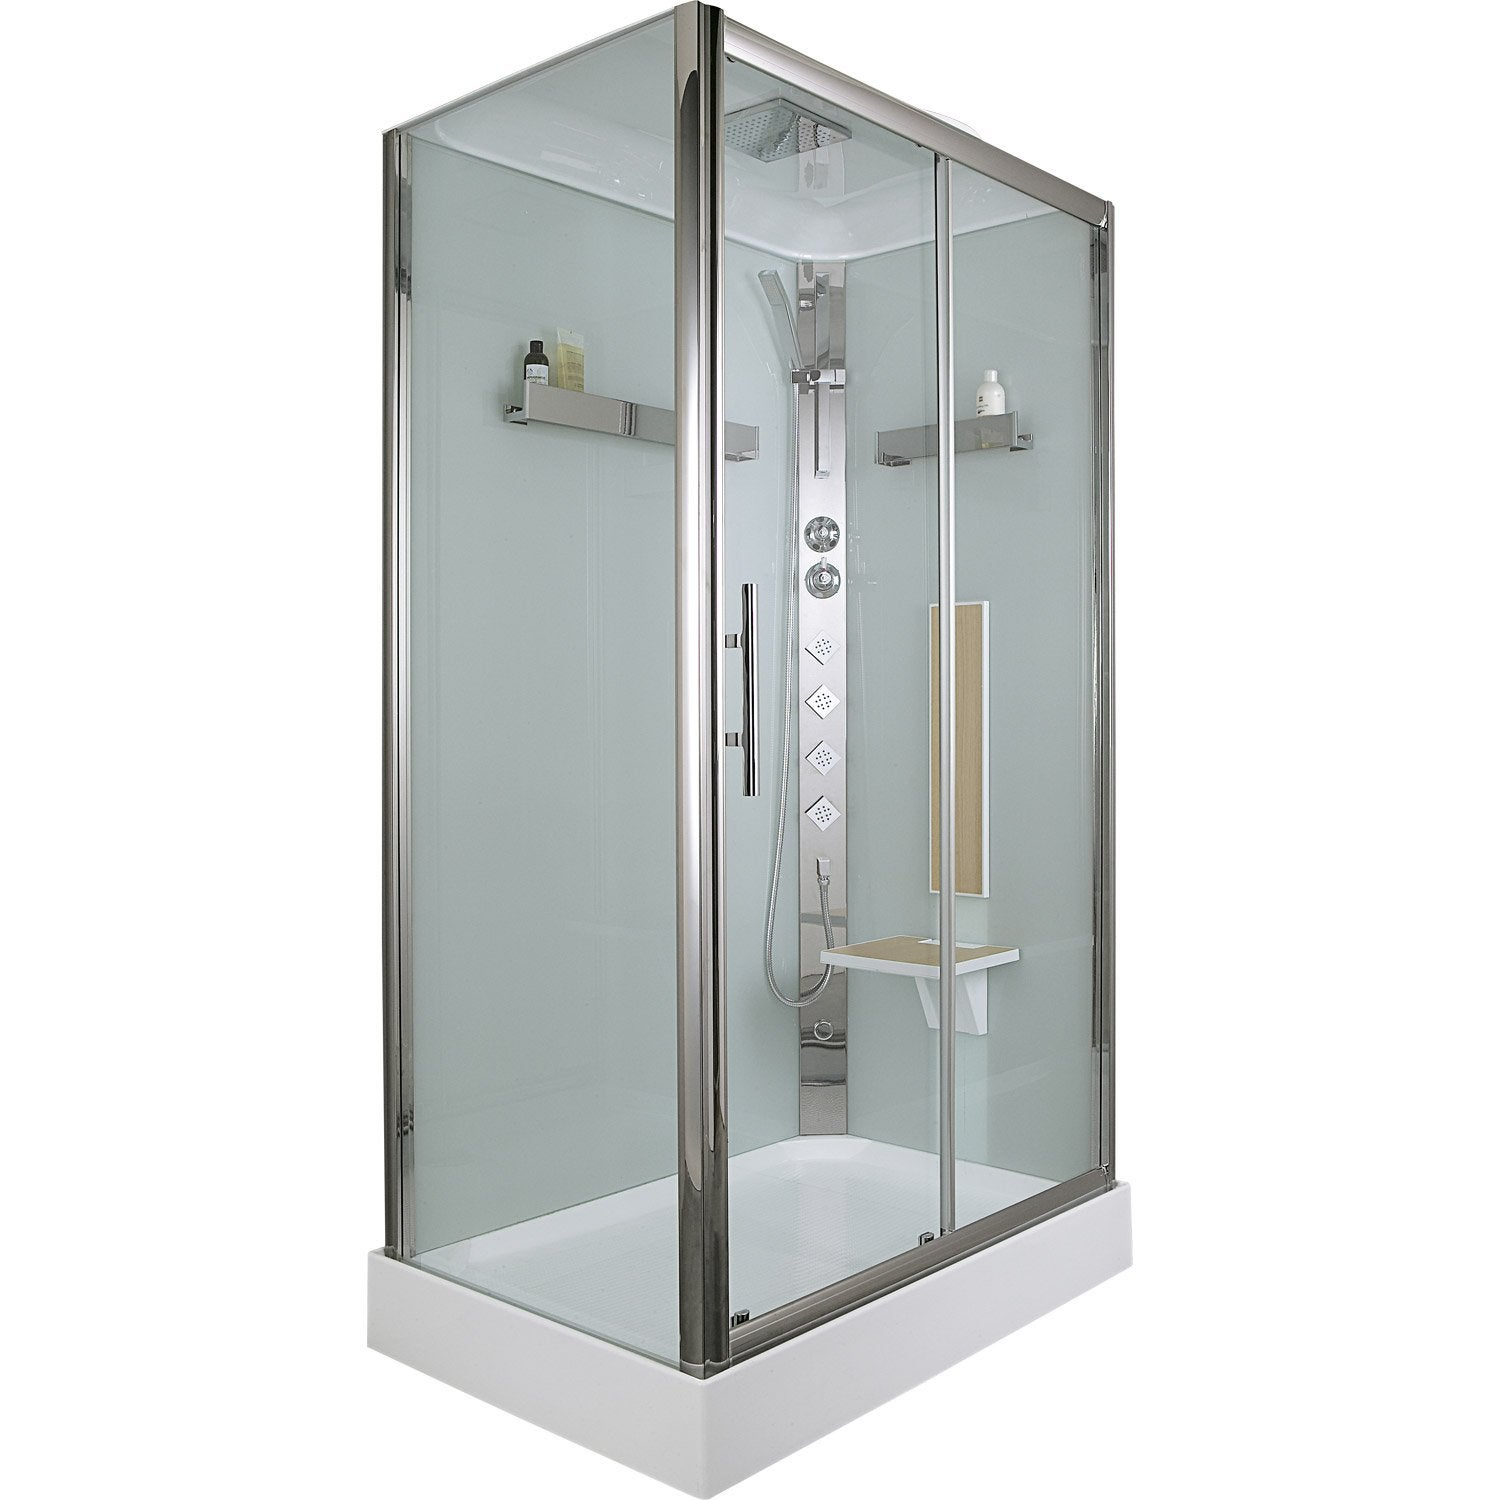 Cabine de douche rectangulaire 120x80 cm ilia ch ne for Fartools rex 120 leroy merlin